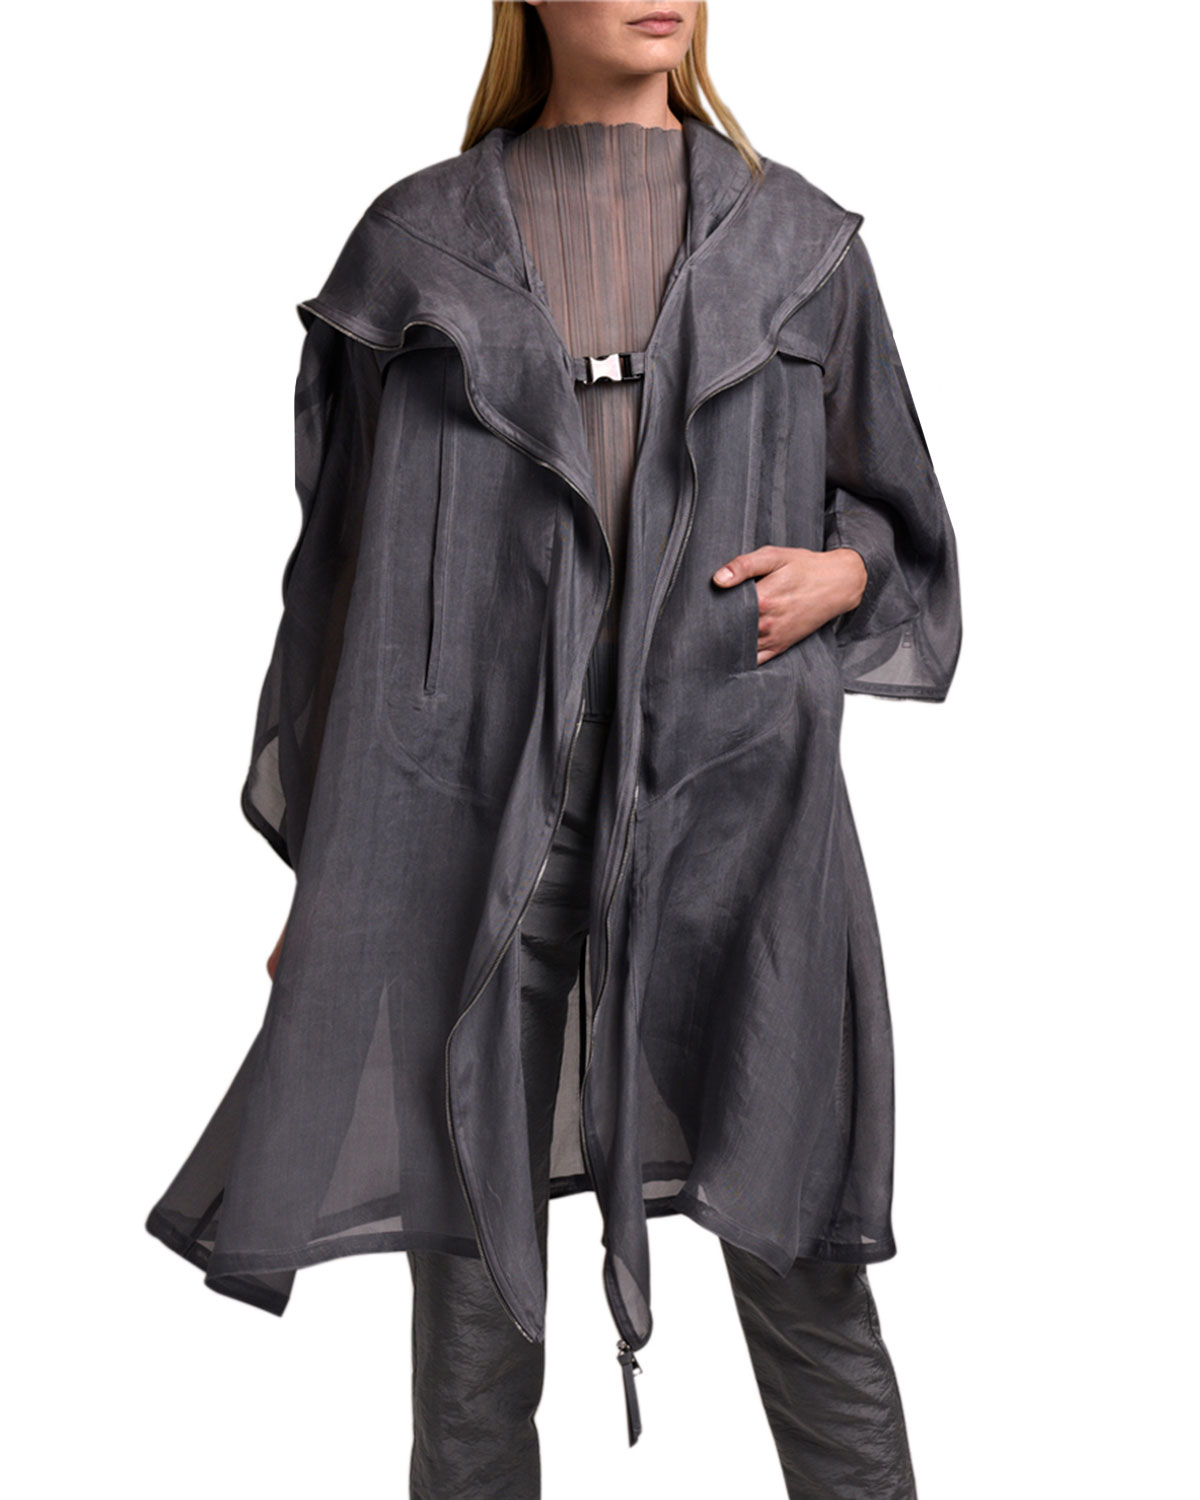 Washed Organza Jacket With Zipper Detail & Hood